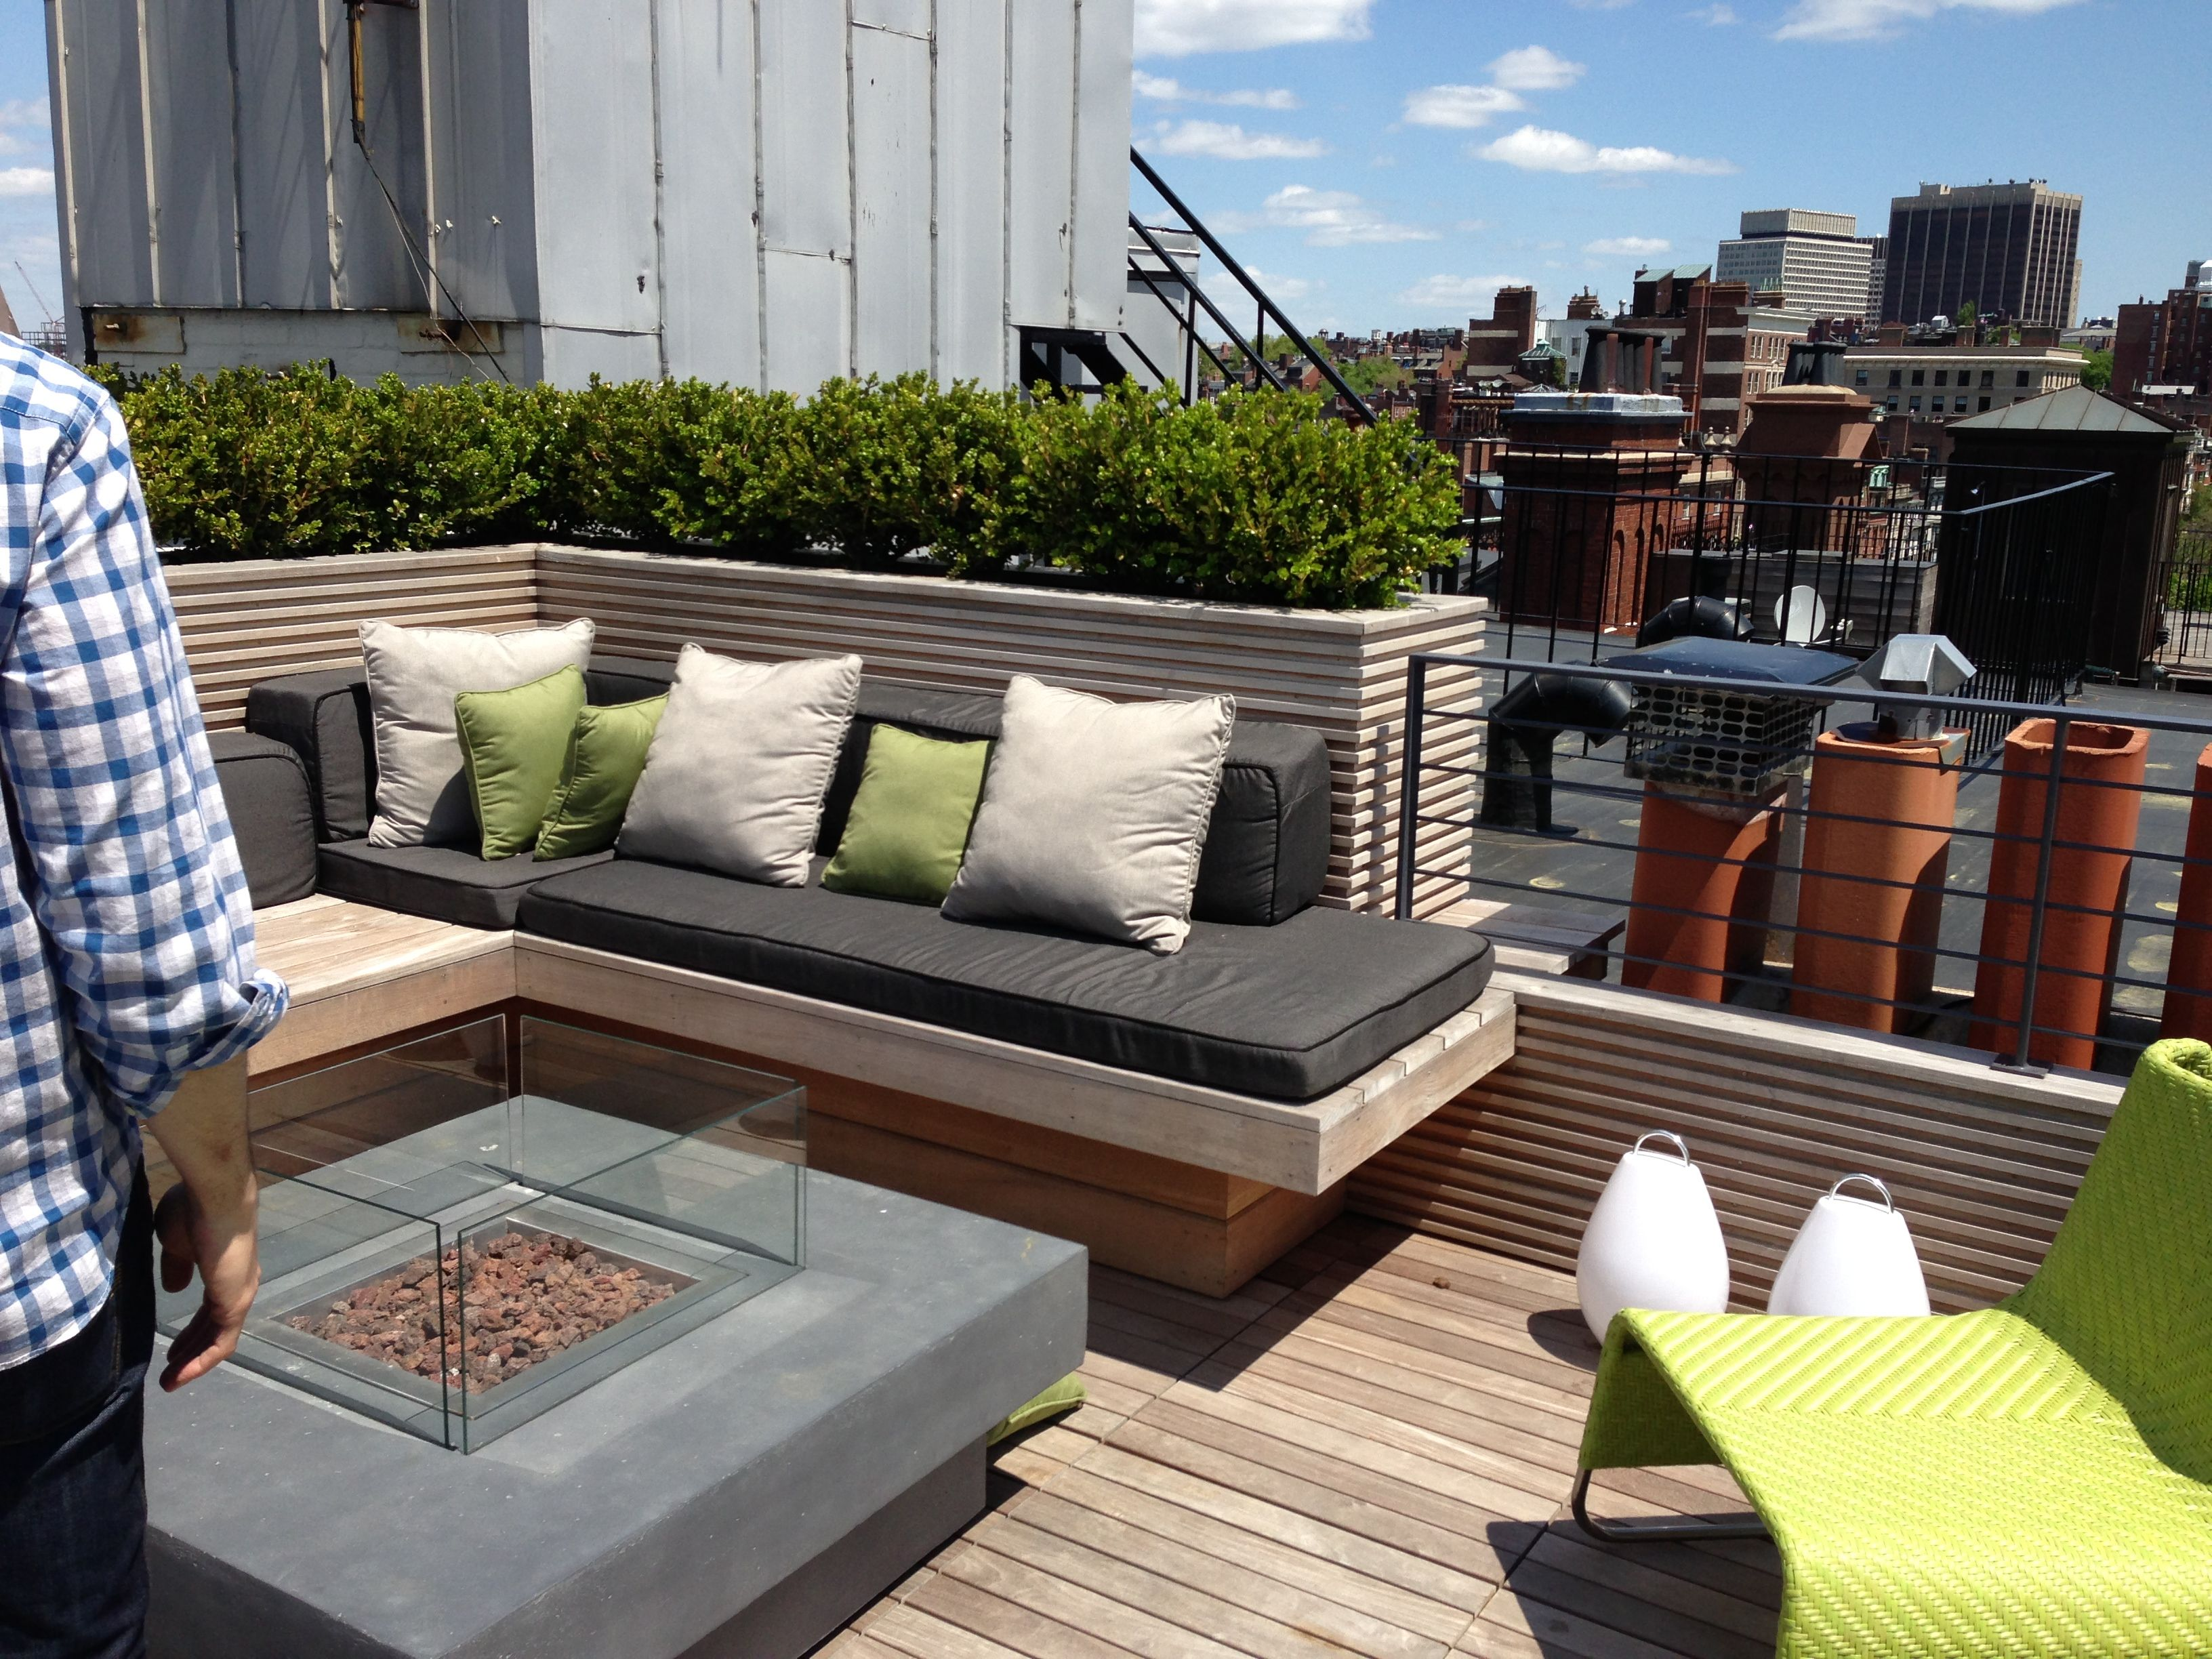 roof deck beacon street boston wakefield condo. Black Bedroom Furniture Sets. Home Design Ideas